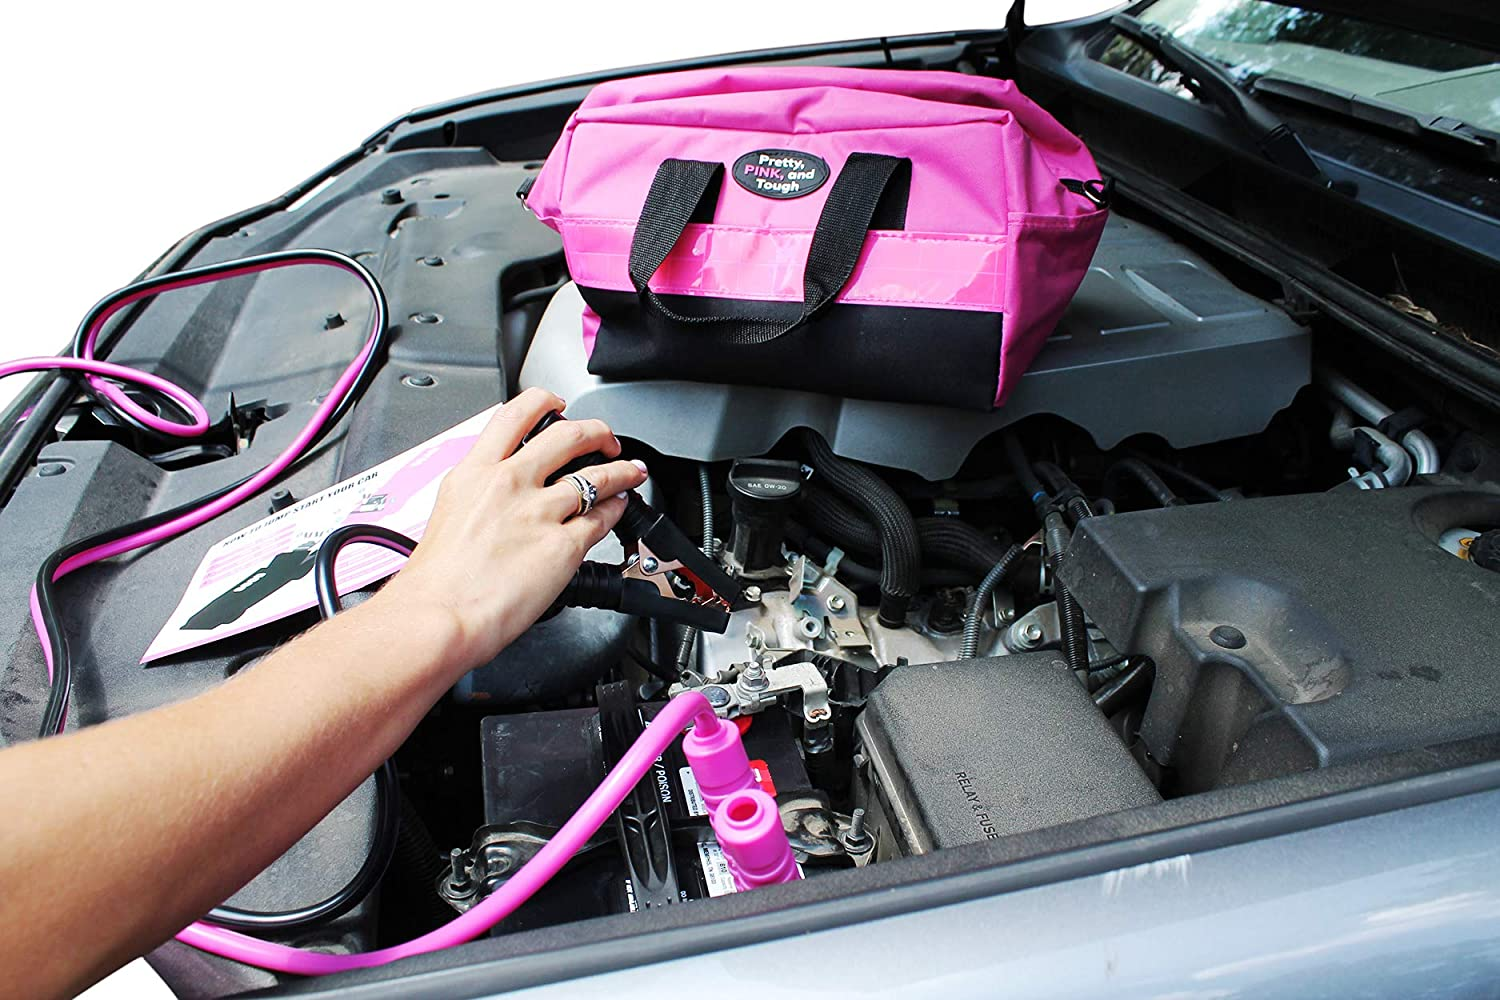 Gears Out Pretty Pink Roadside Kit - Pink Emergency kit for Teen Girls and Women